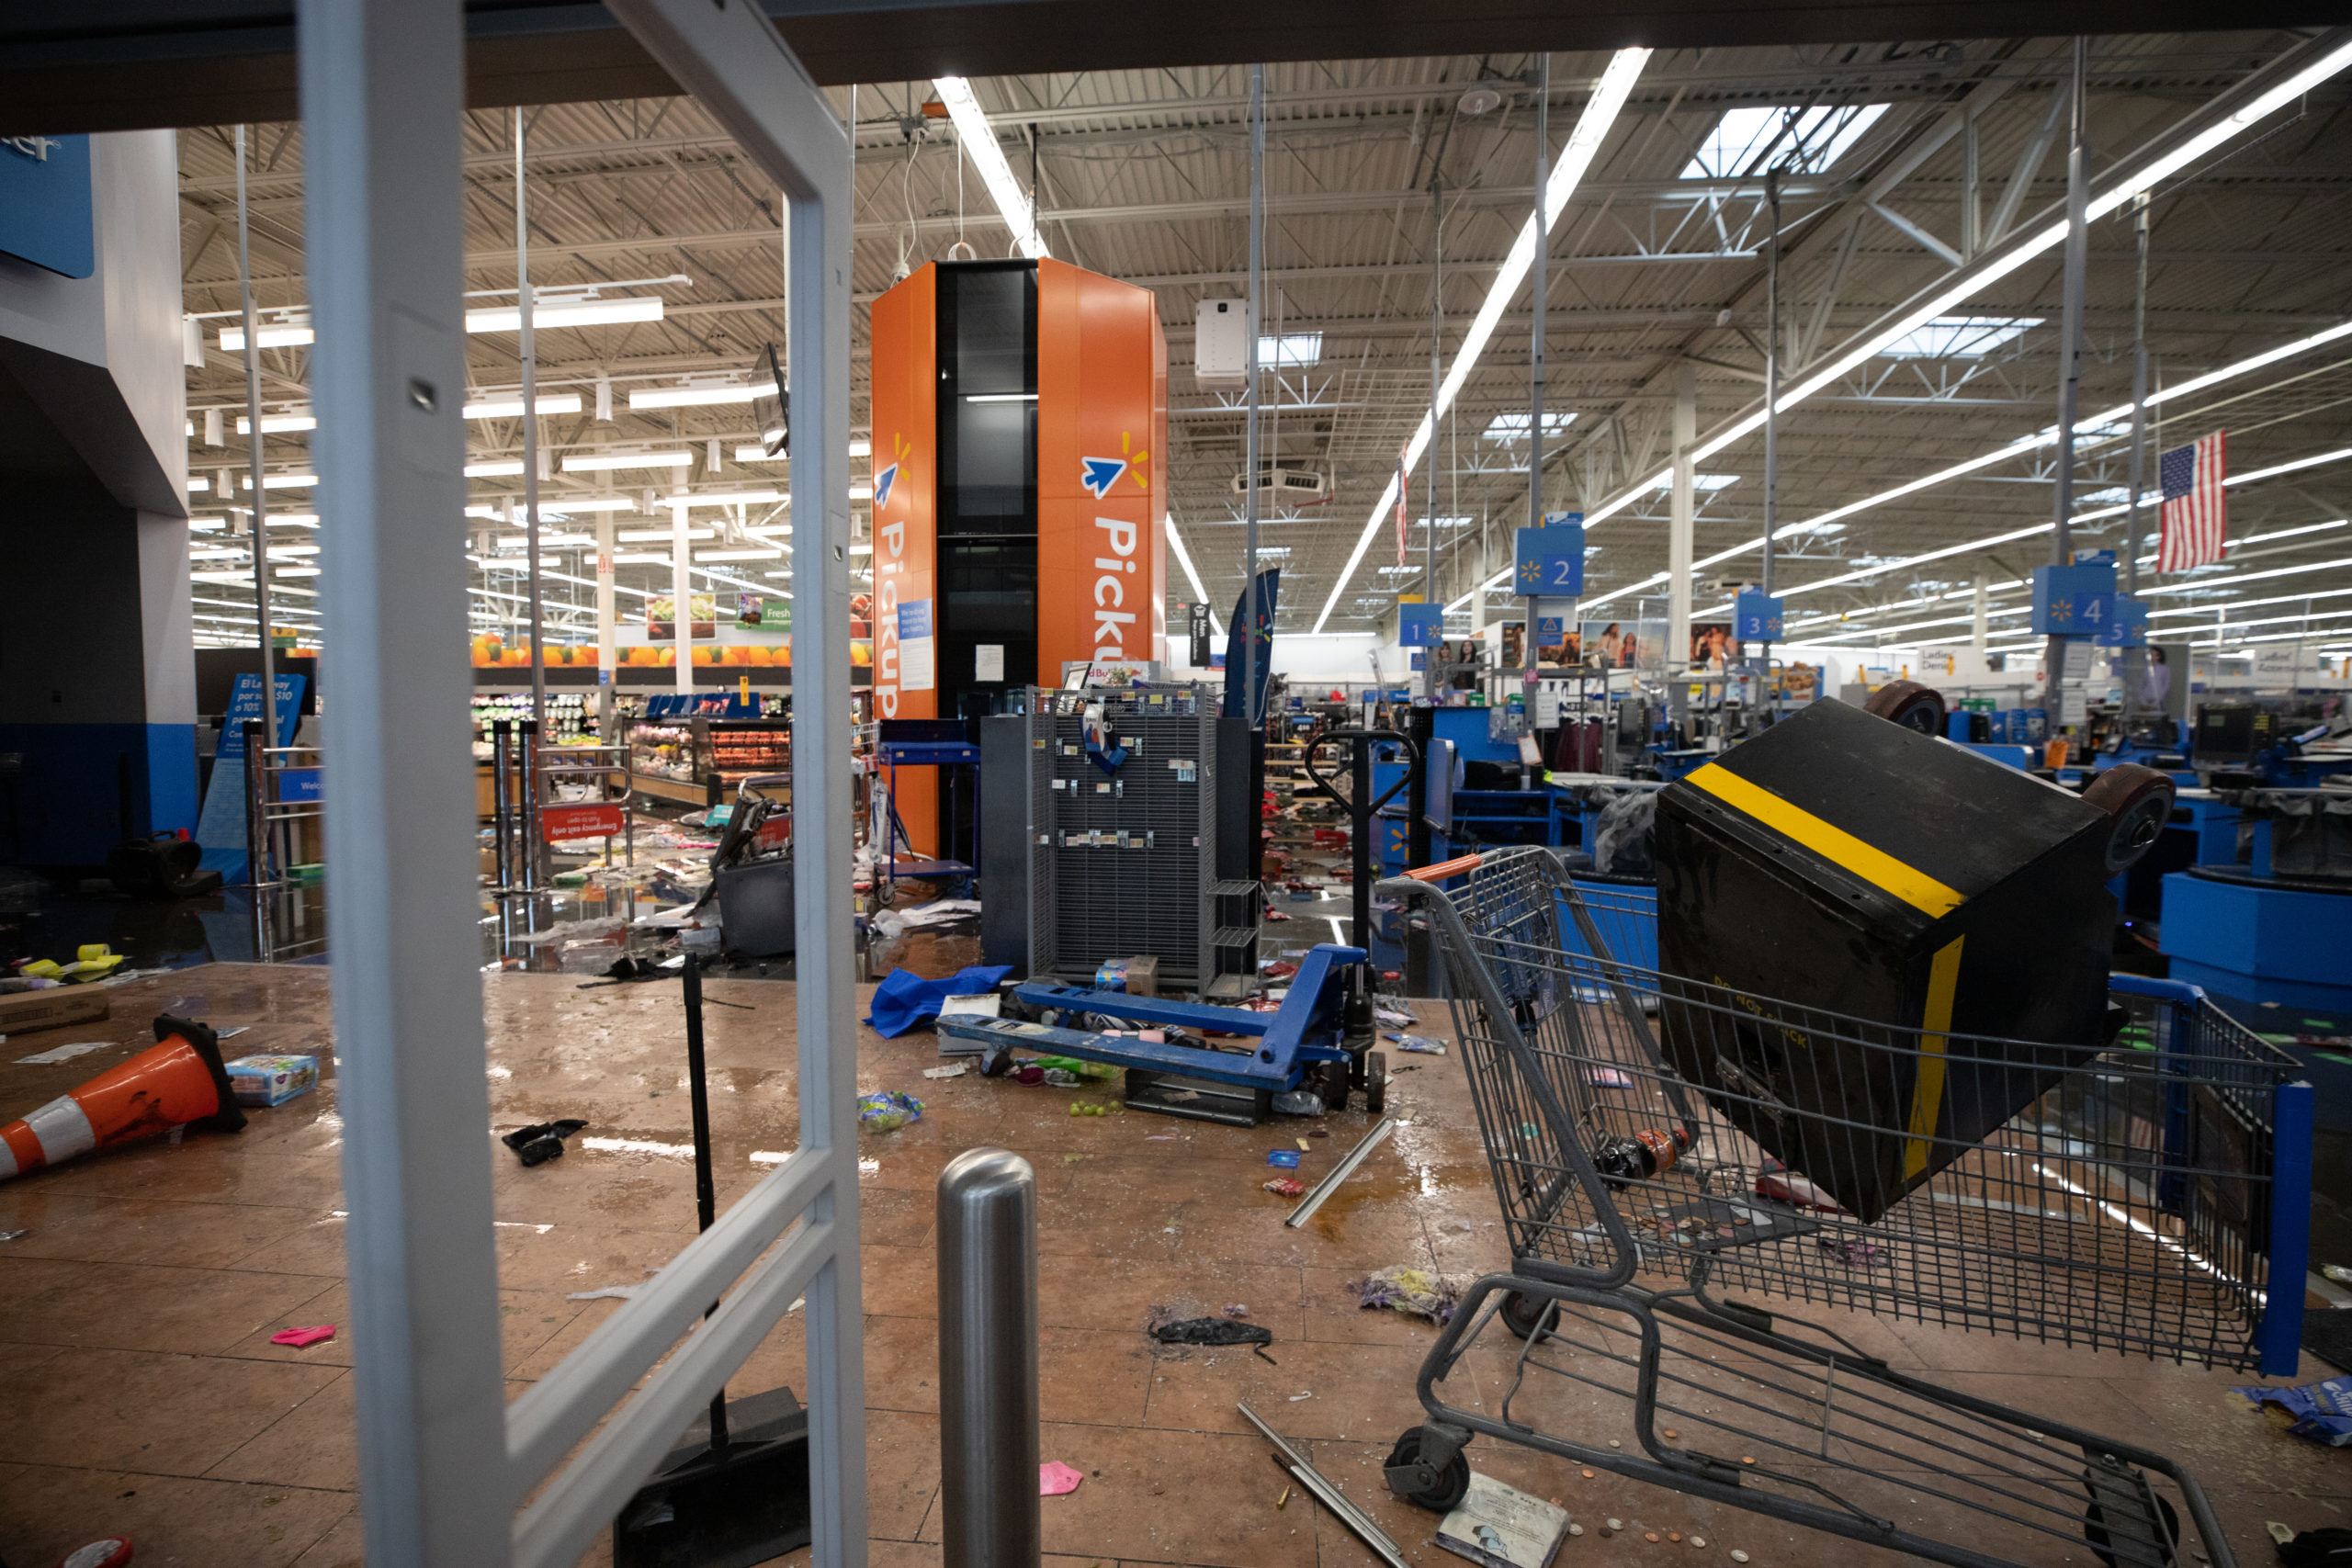 The morning after looters destroyed the Walmart located at 2200 Wheatsheaf Ln. in Philadelphia, Pennsylvania, on Oct. 28, 2020. (Kaylee Greenlee - Daily Caller News Foundation.